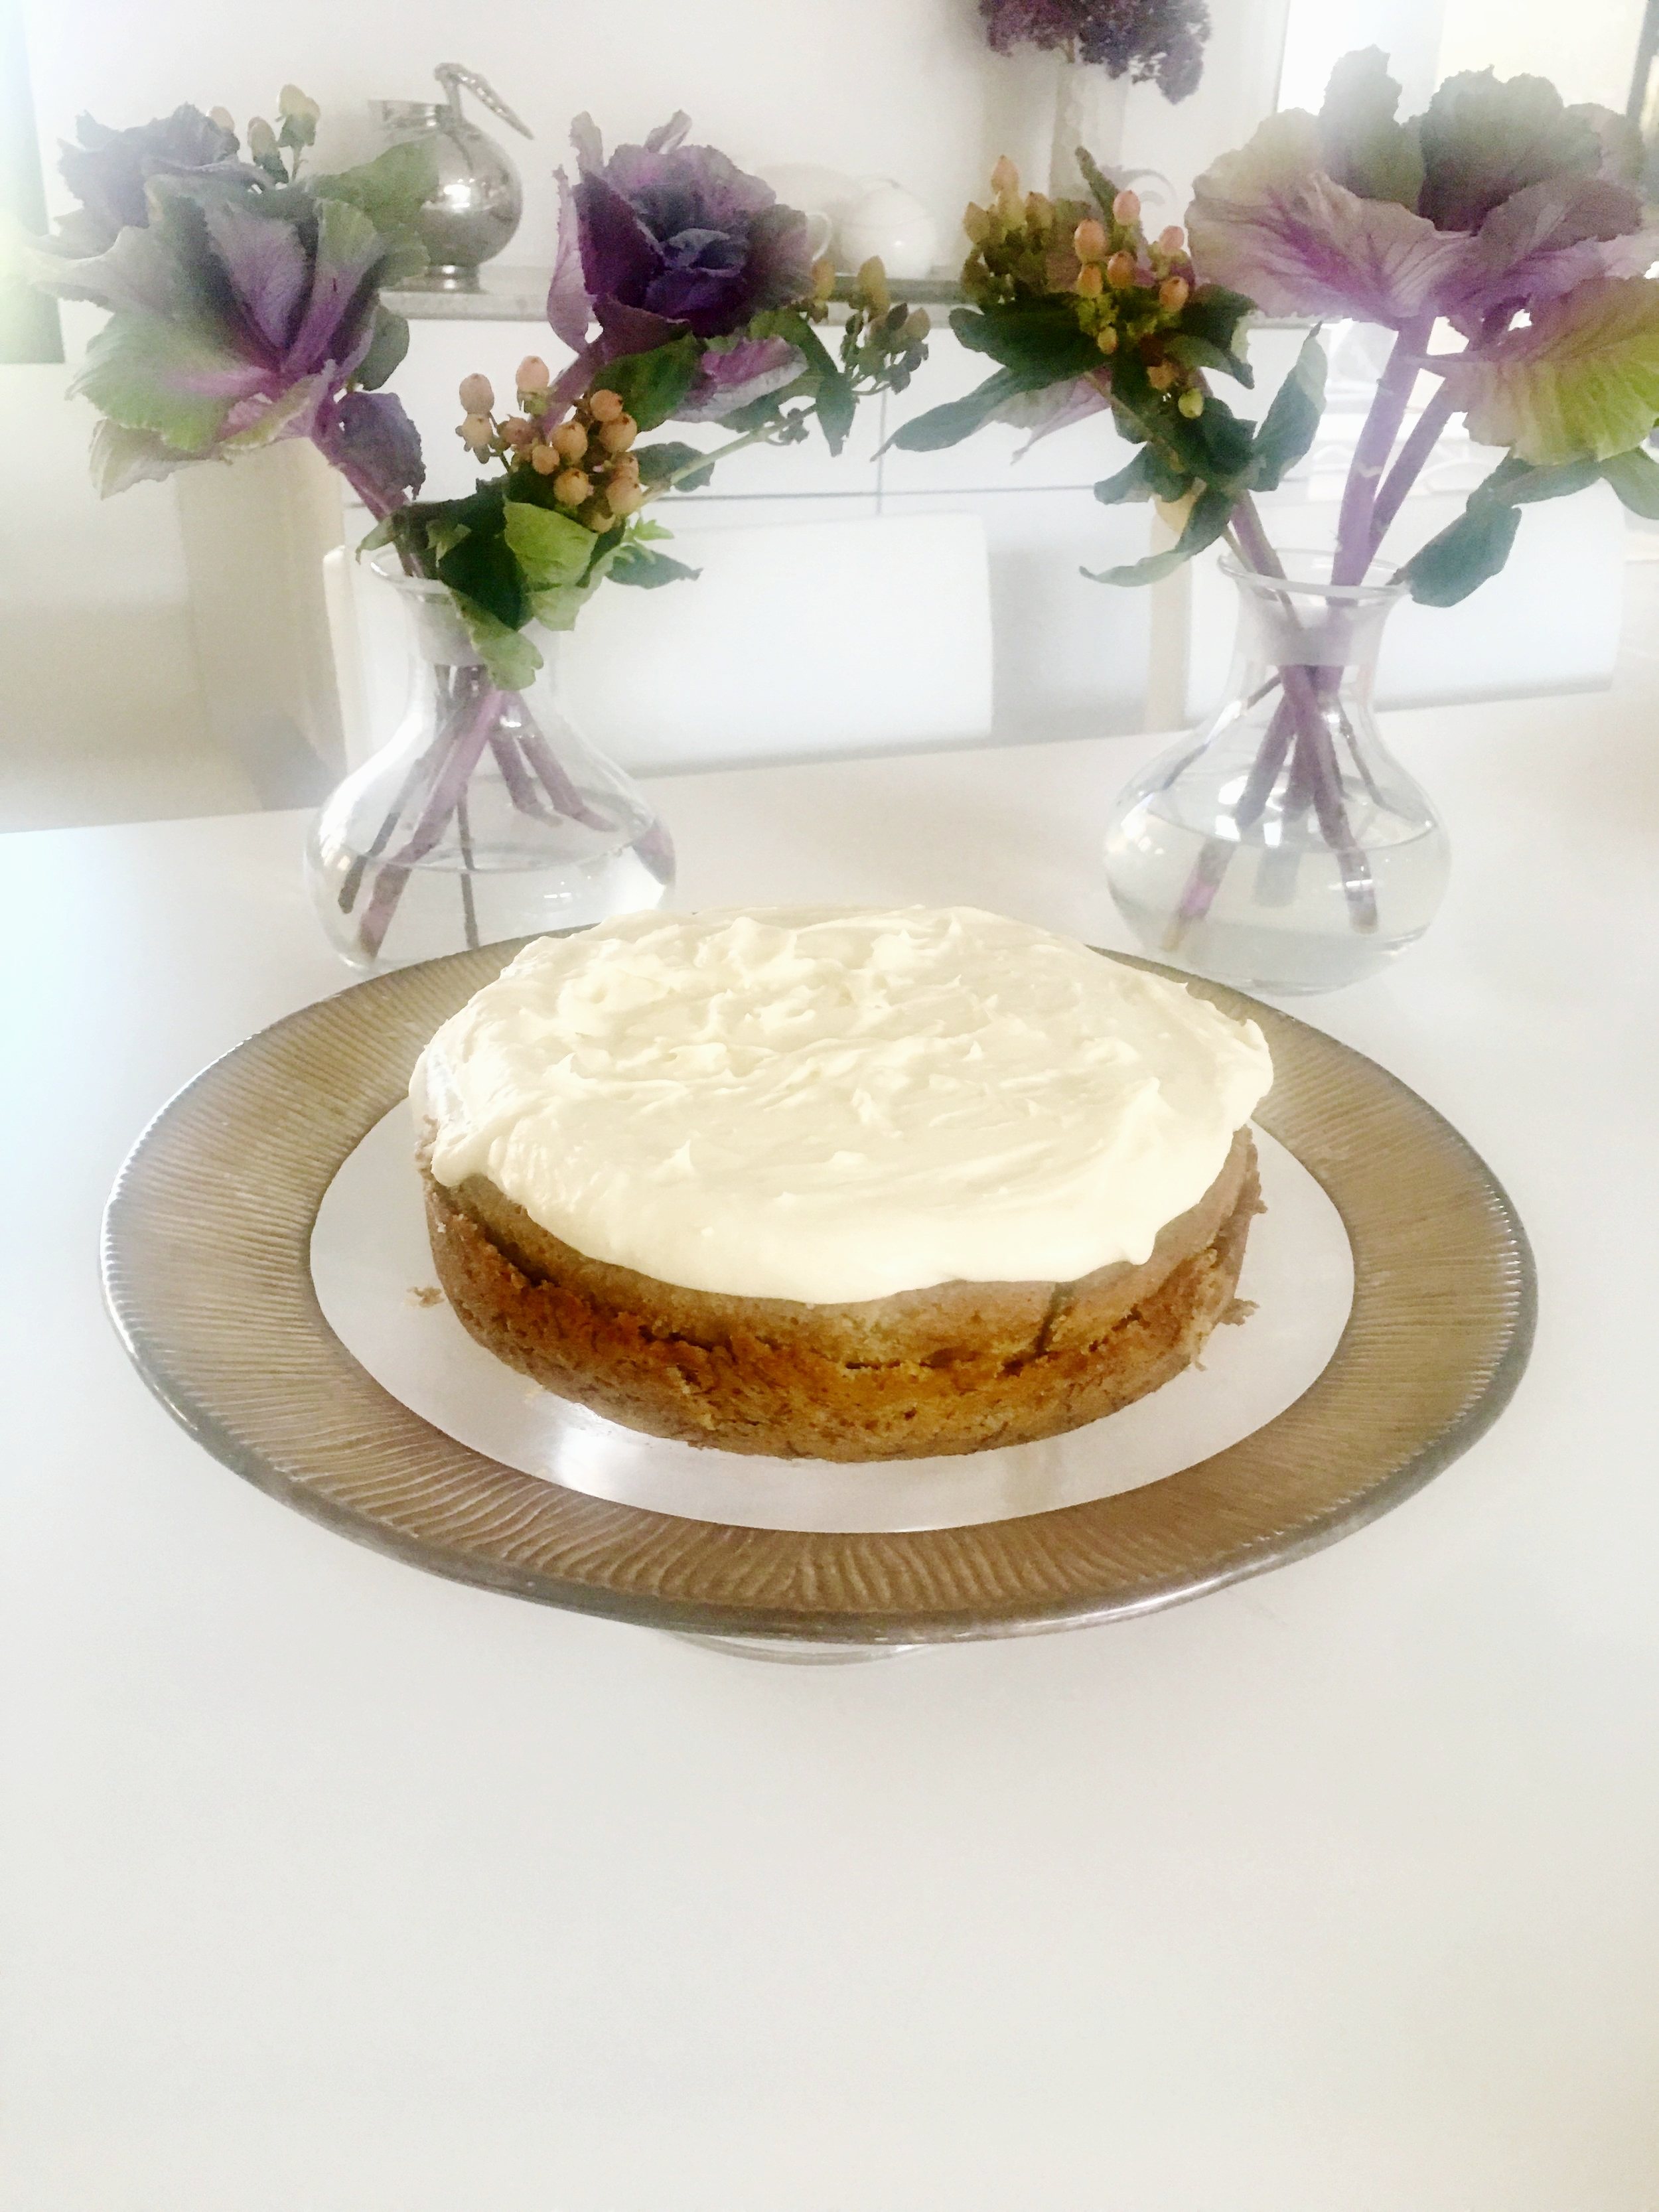 Ina Garten's recipe for Banana Cake is ridiculously good! The addition of the orange rind is what makes it so good.